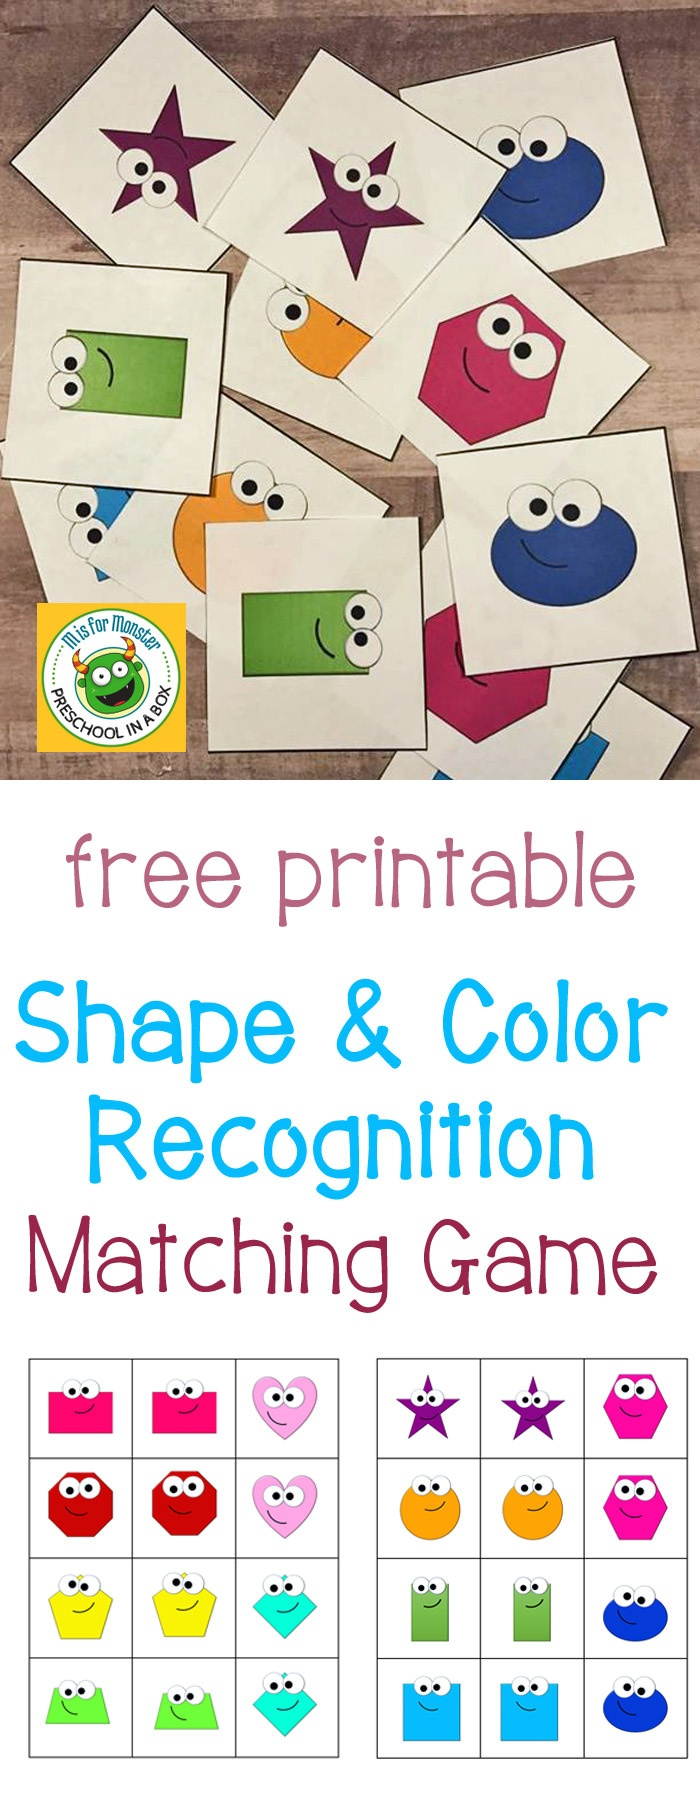 Shape And Color Recognition Matching Game Free Printable - Free Printable Matching Cards